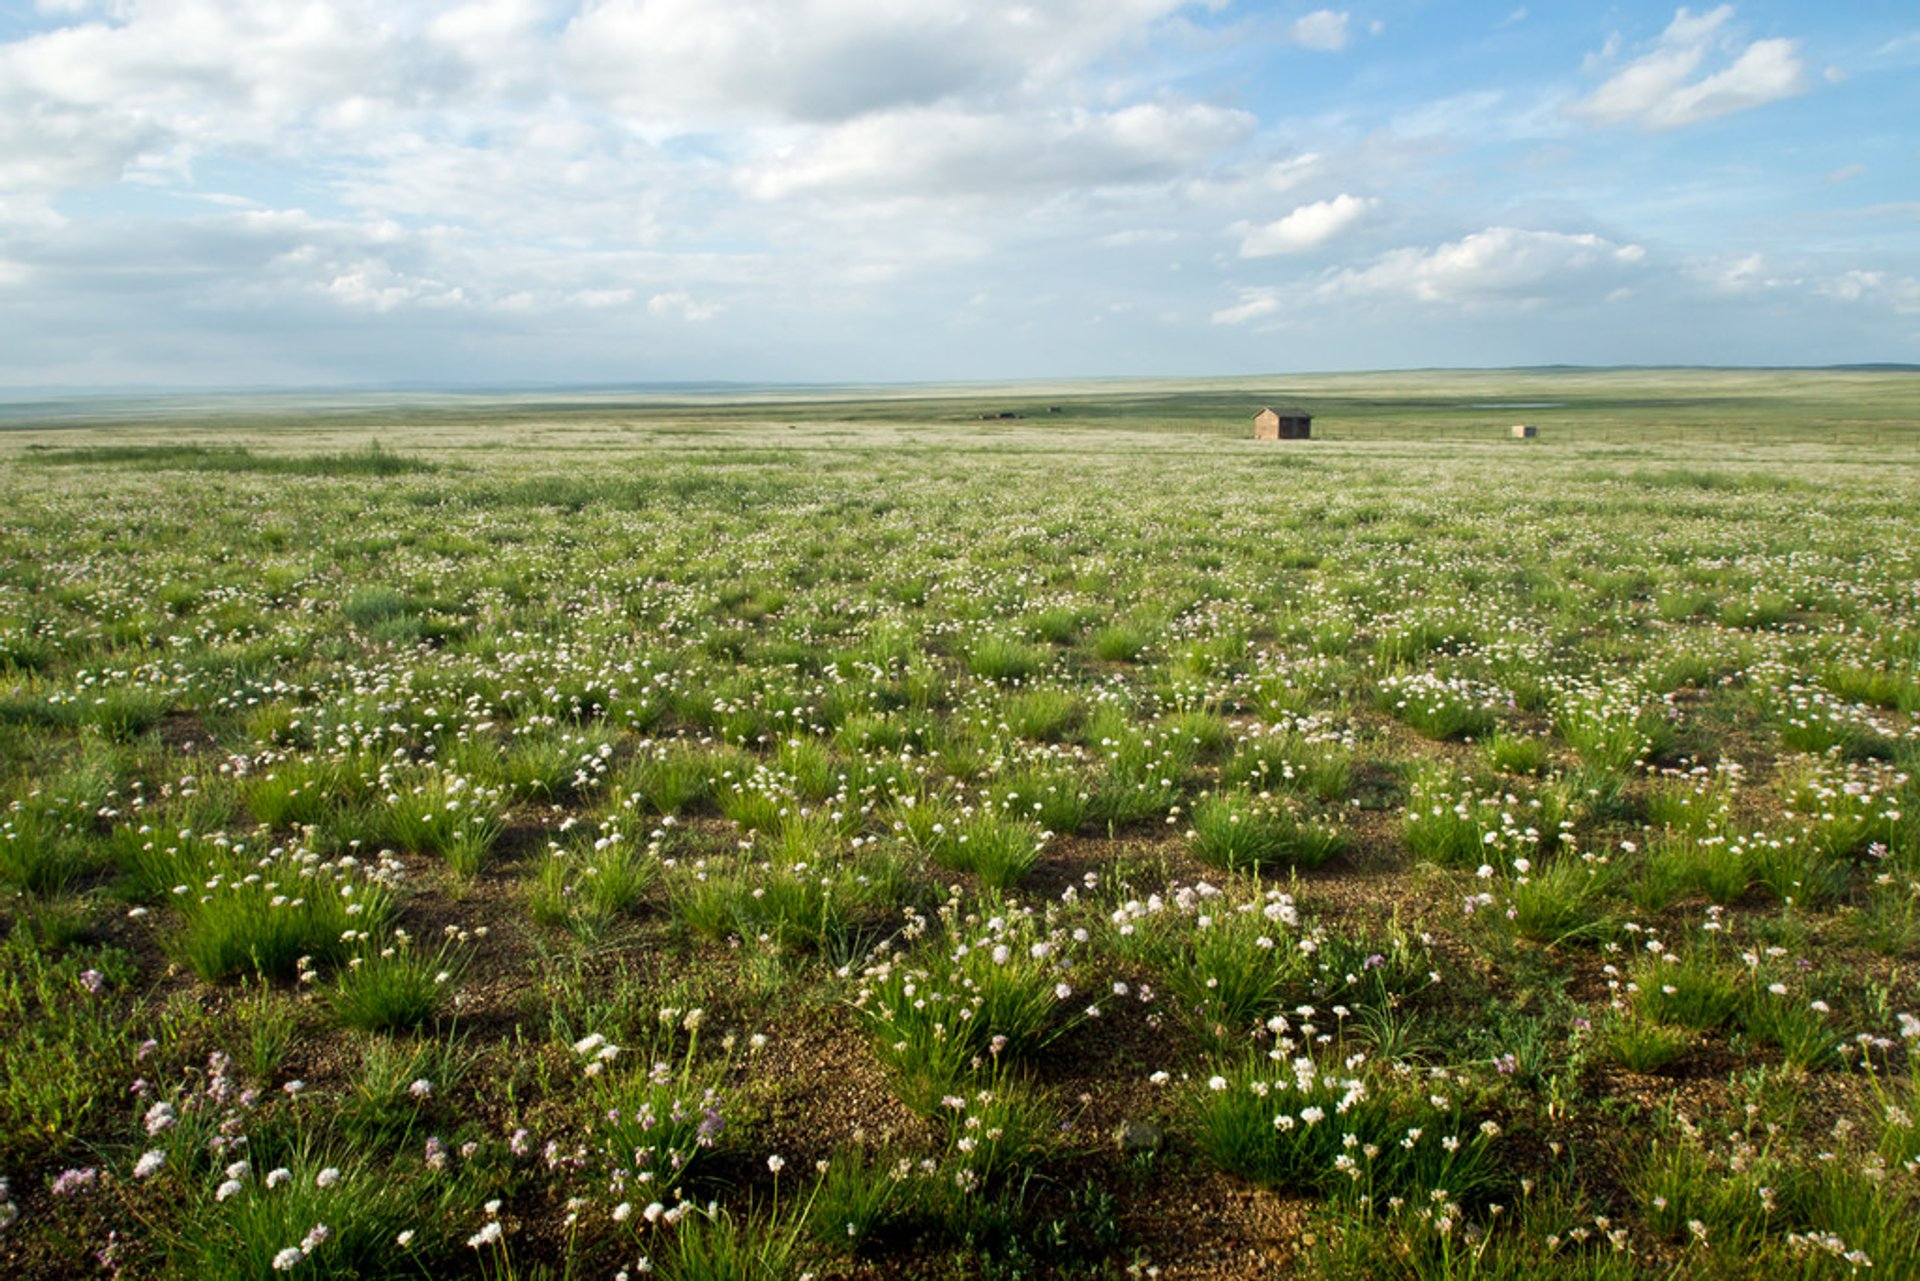 Wildflowers of Steppes in Mongolia 2020 - Best Time